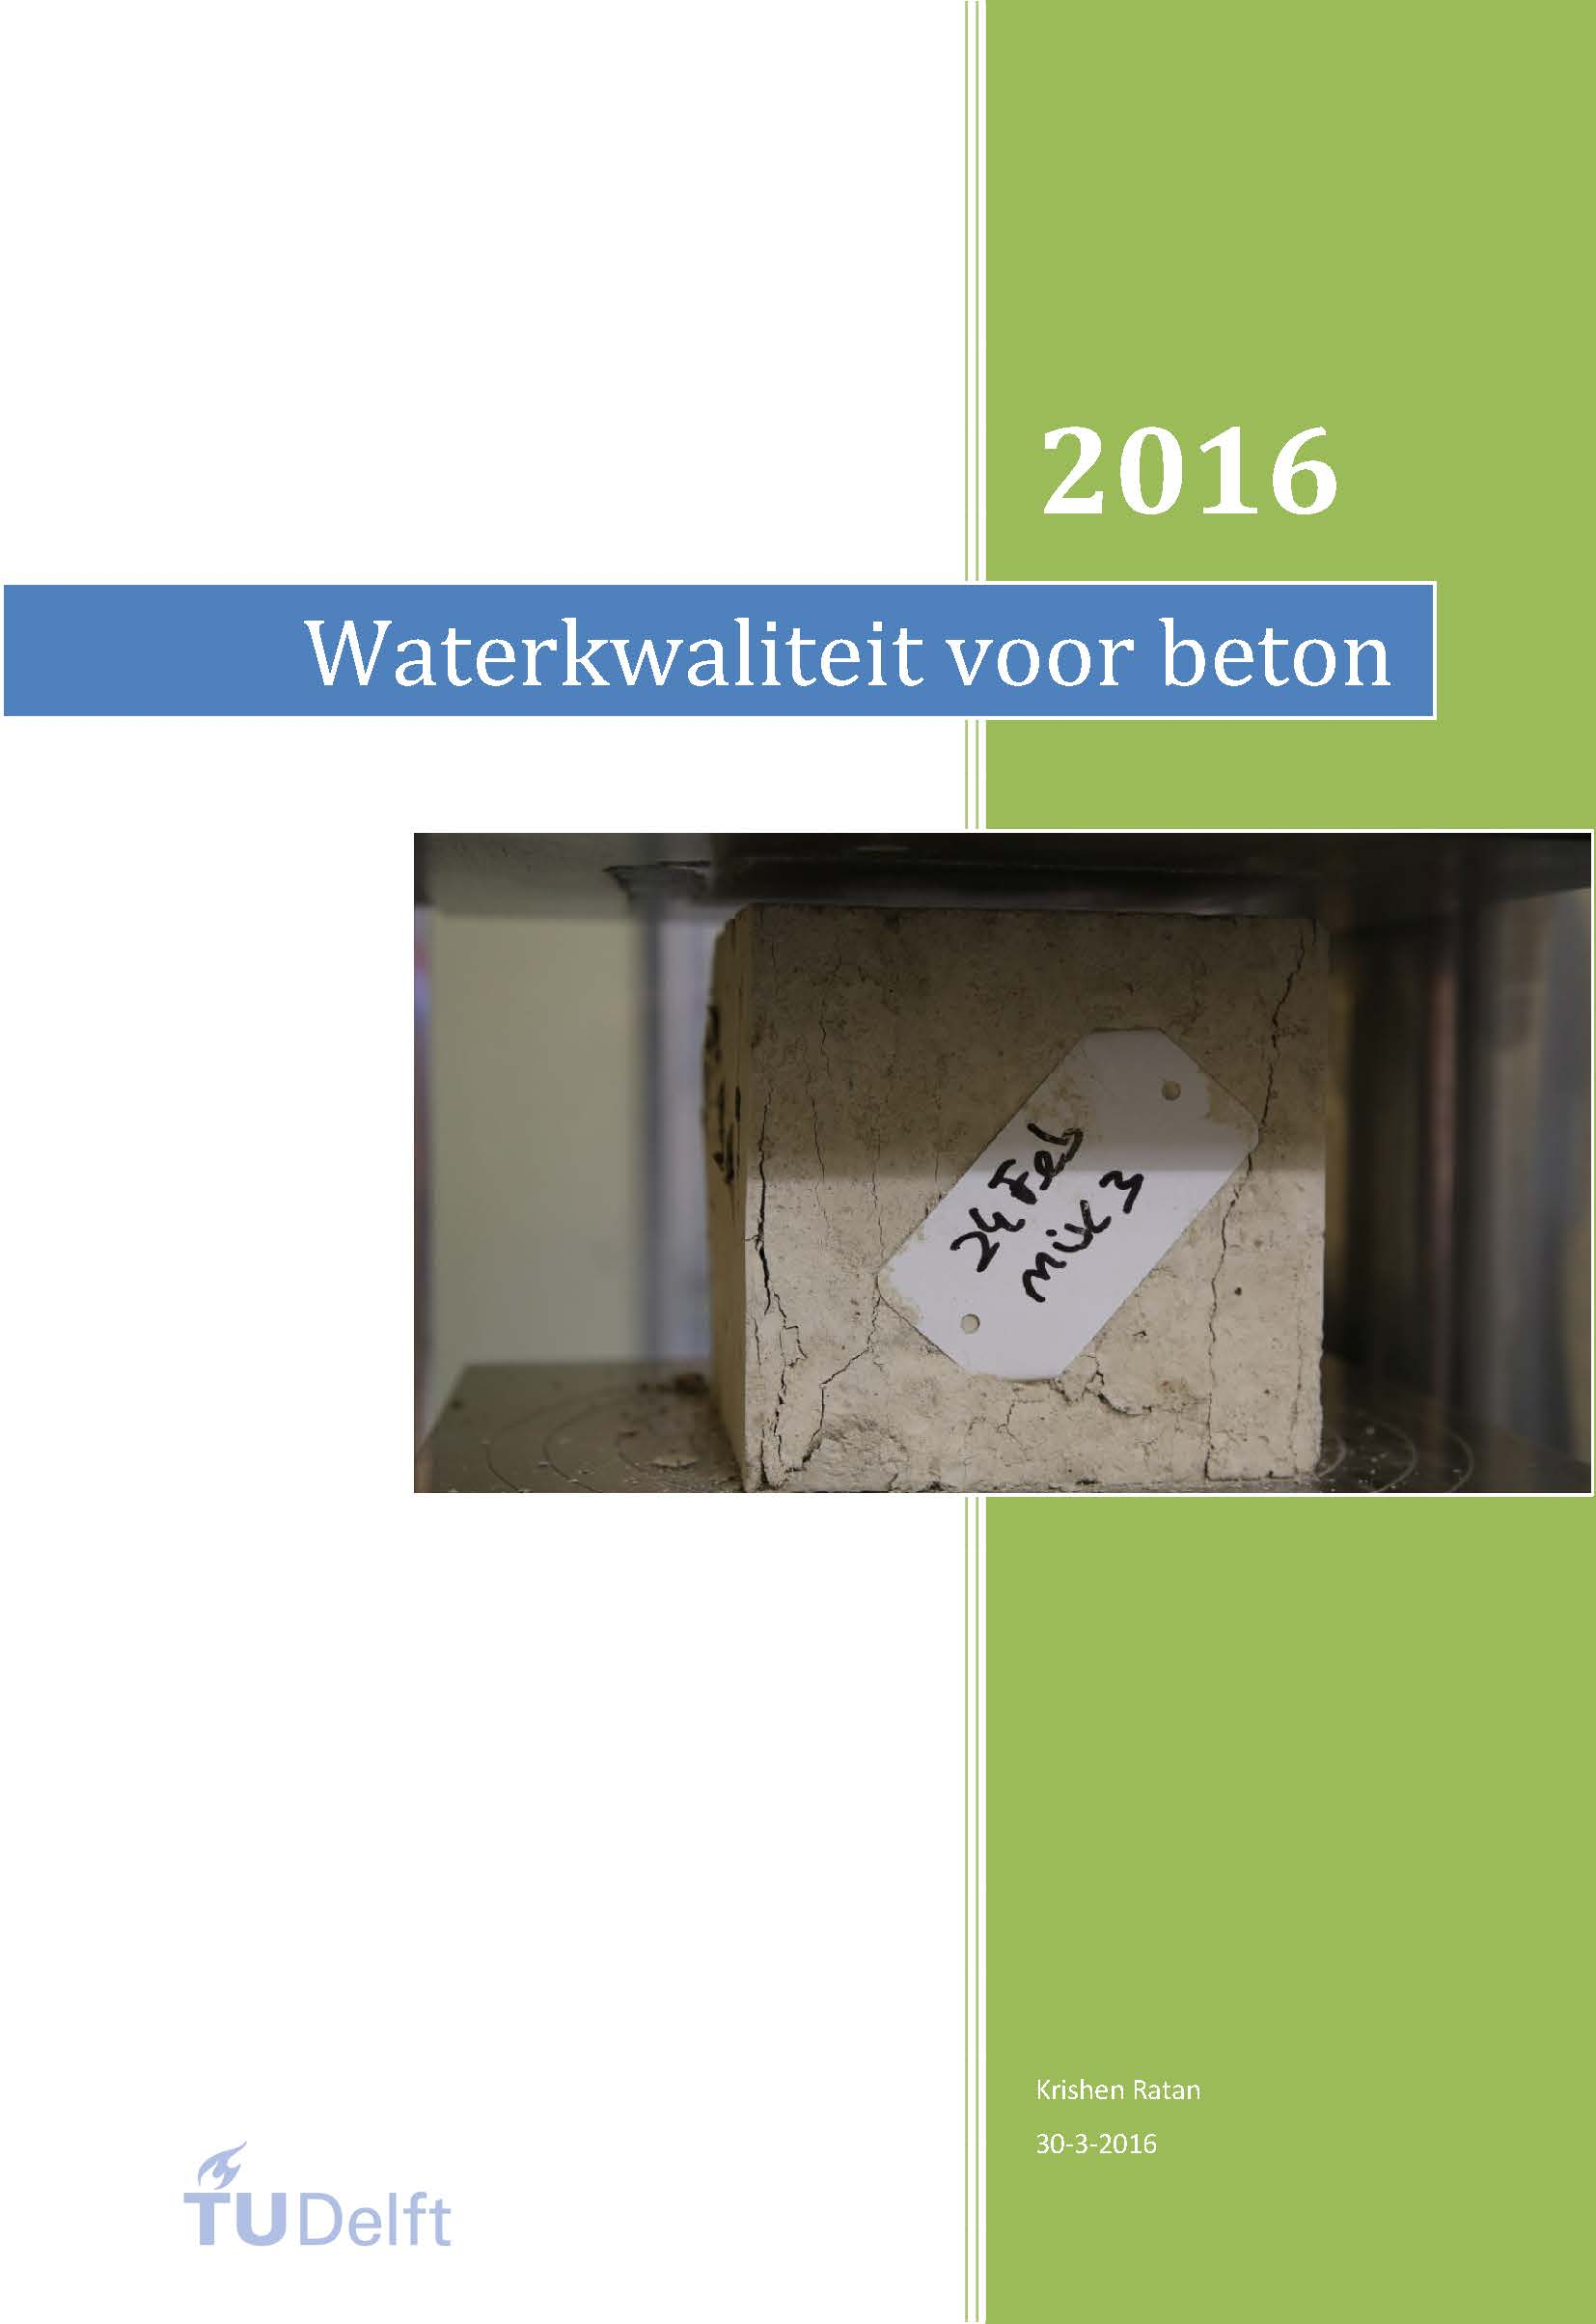 BSc-Krish_eindreport_maart_2016_cover